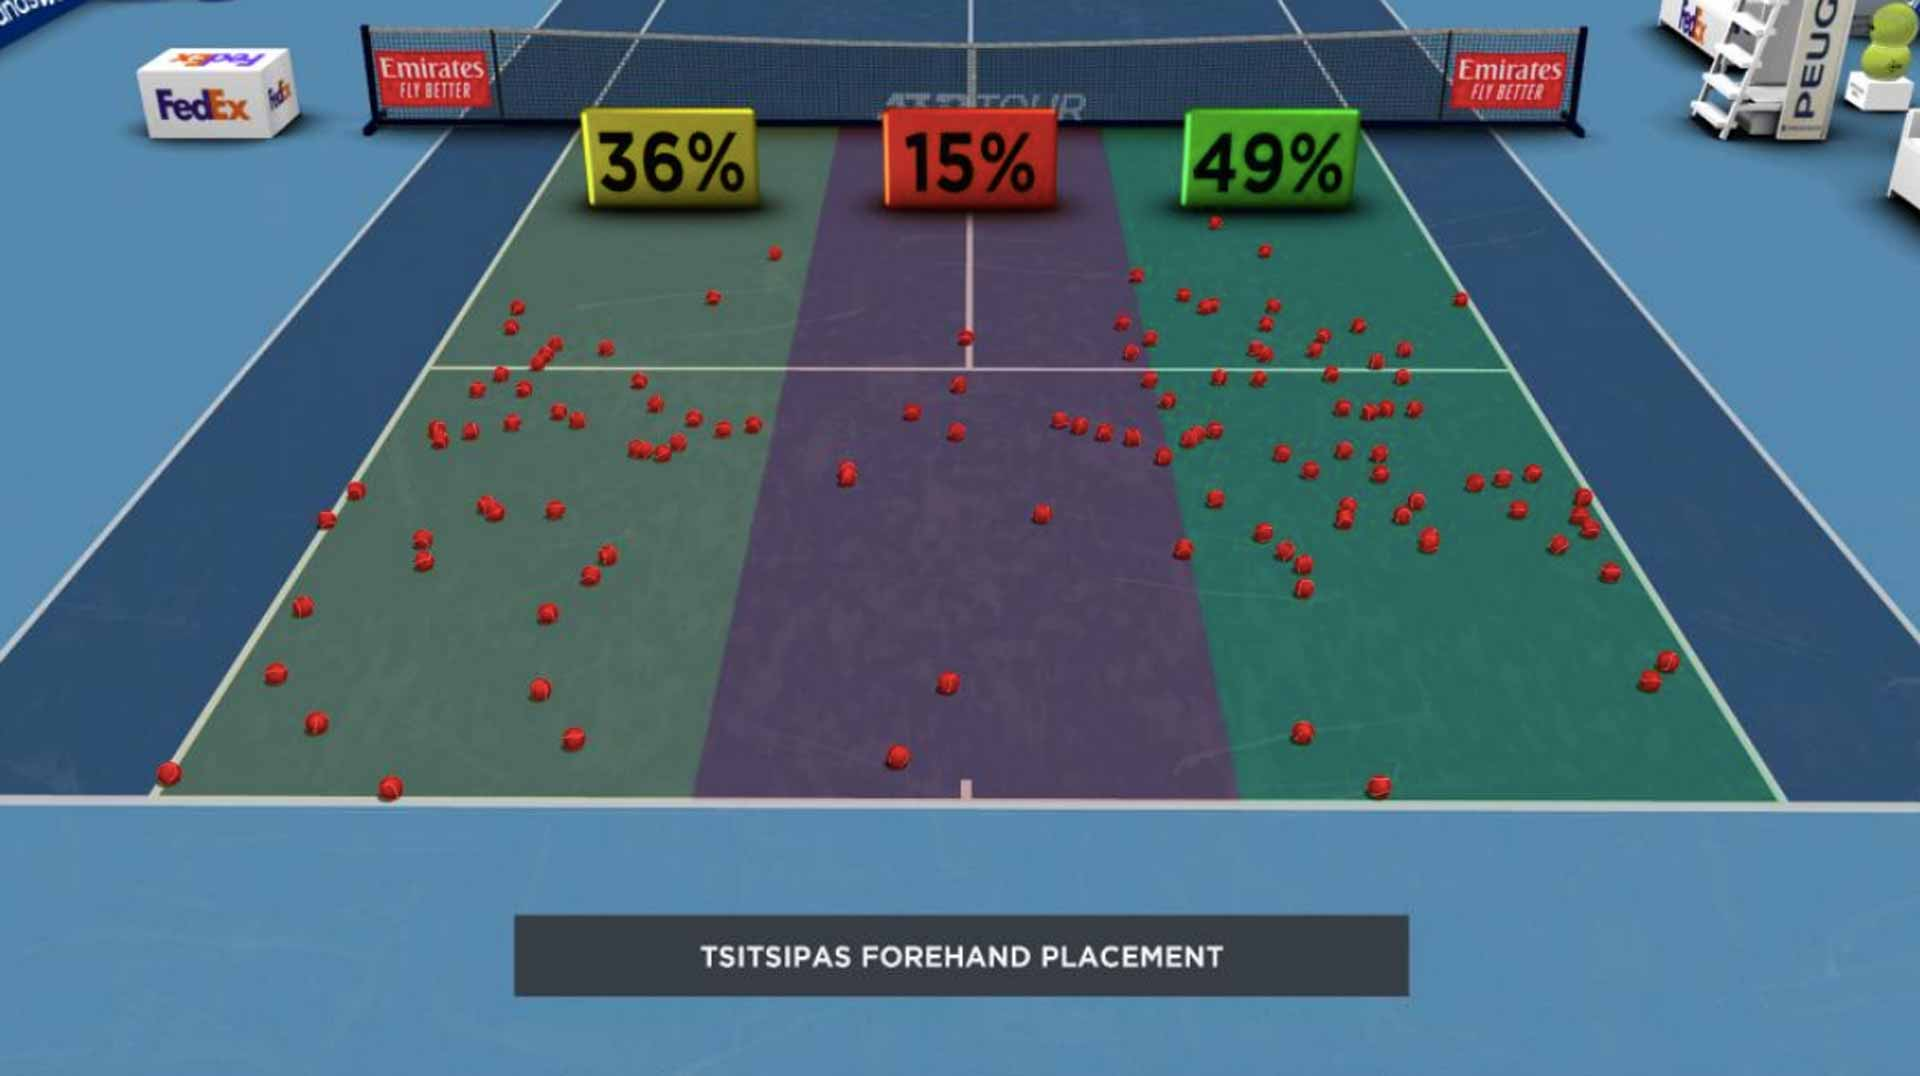 Tsitsipas Forehand Placement